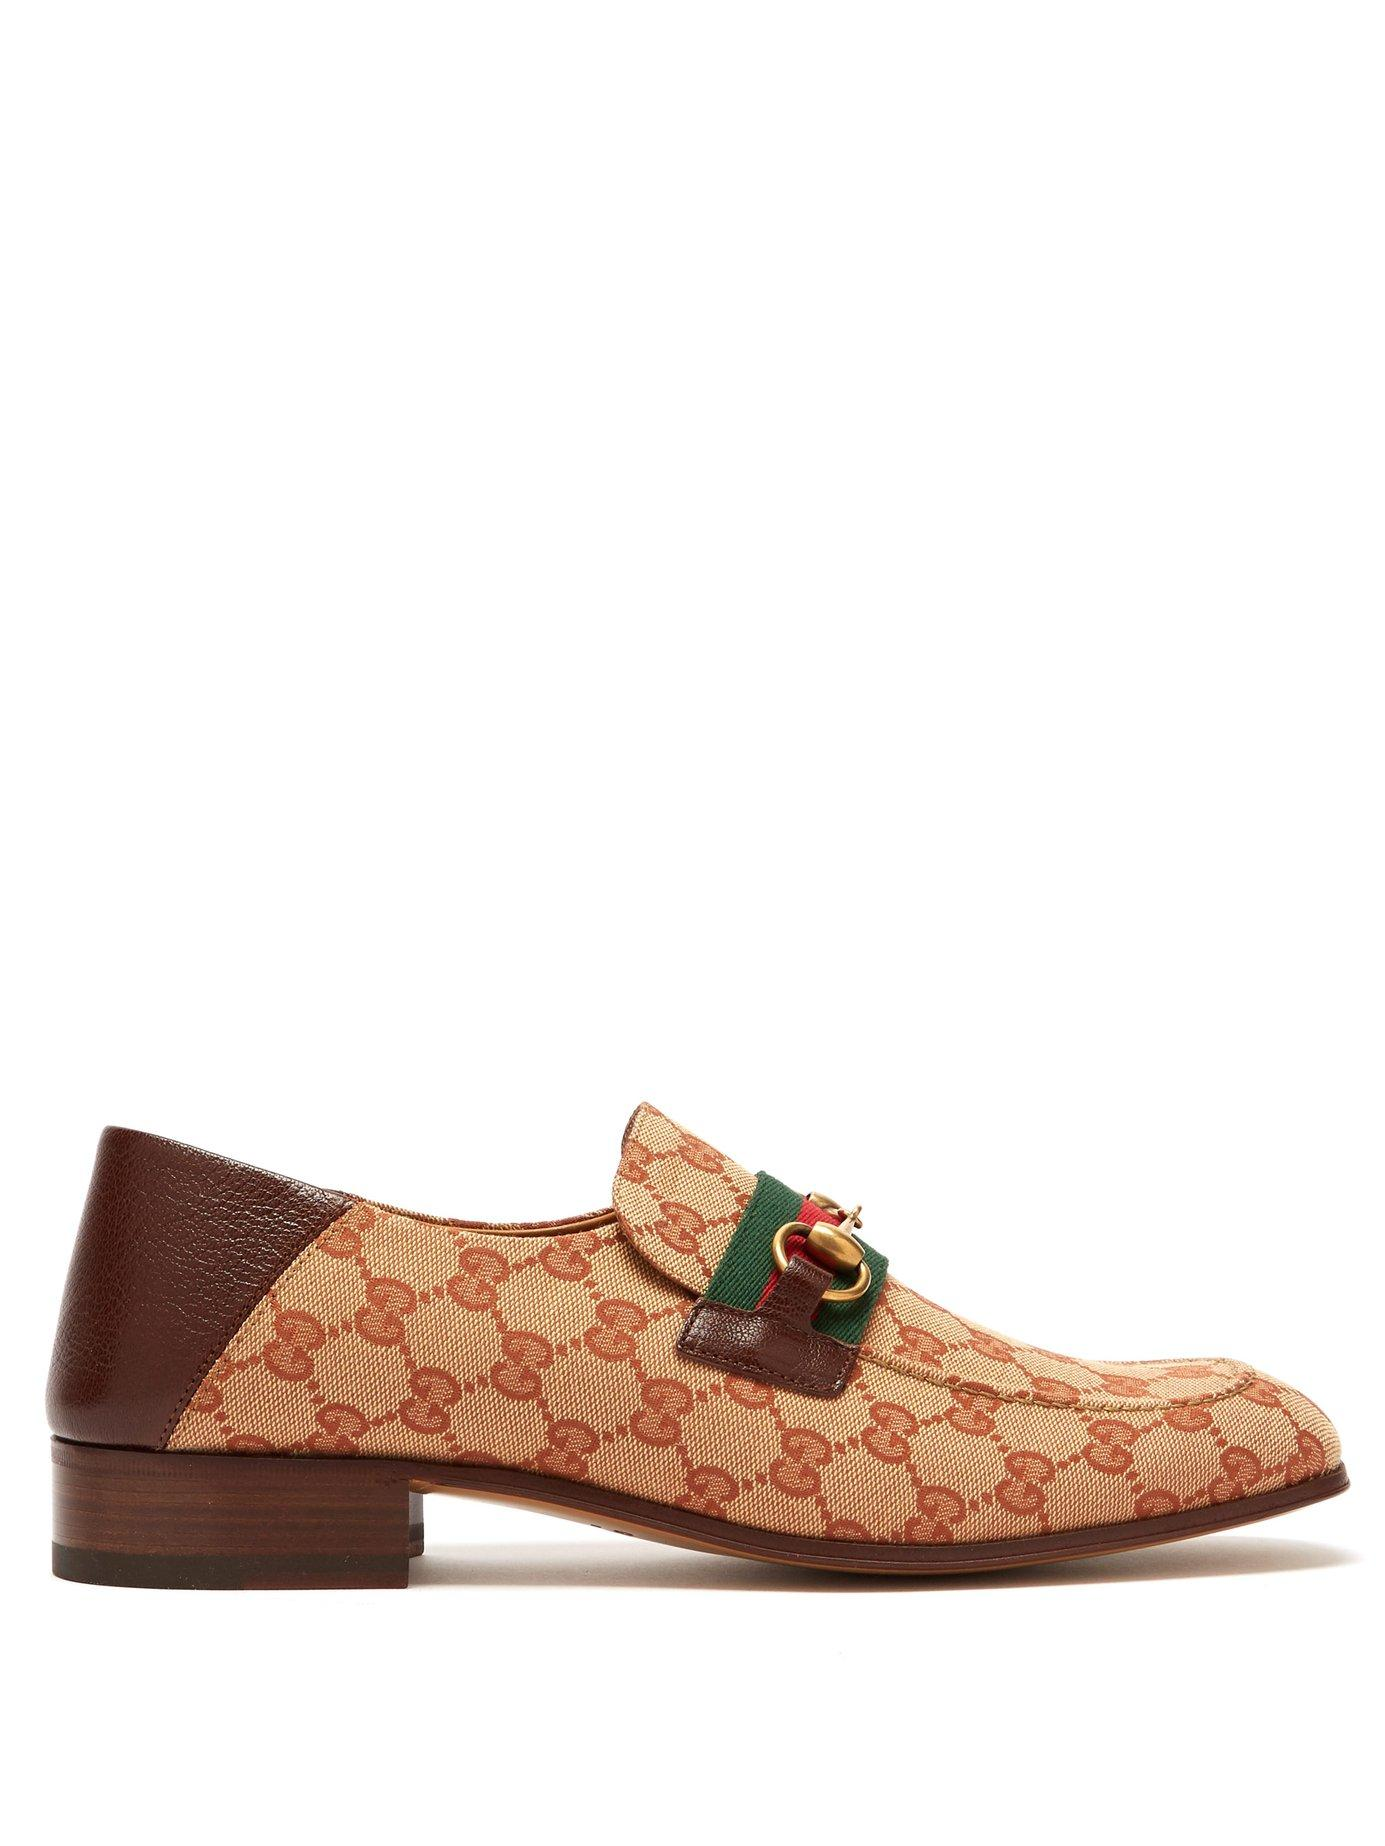 1bfeef3b9d4 Lyst - Gucci Donnie Gg Supreme Loafers in Natural for Men